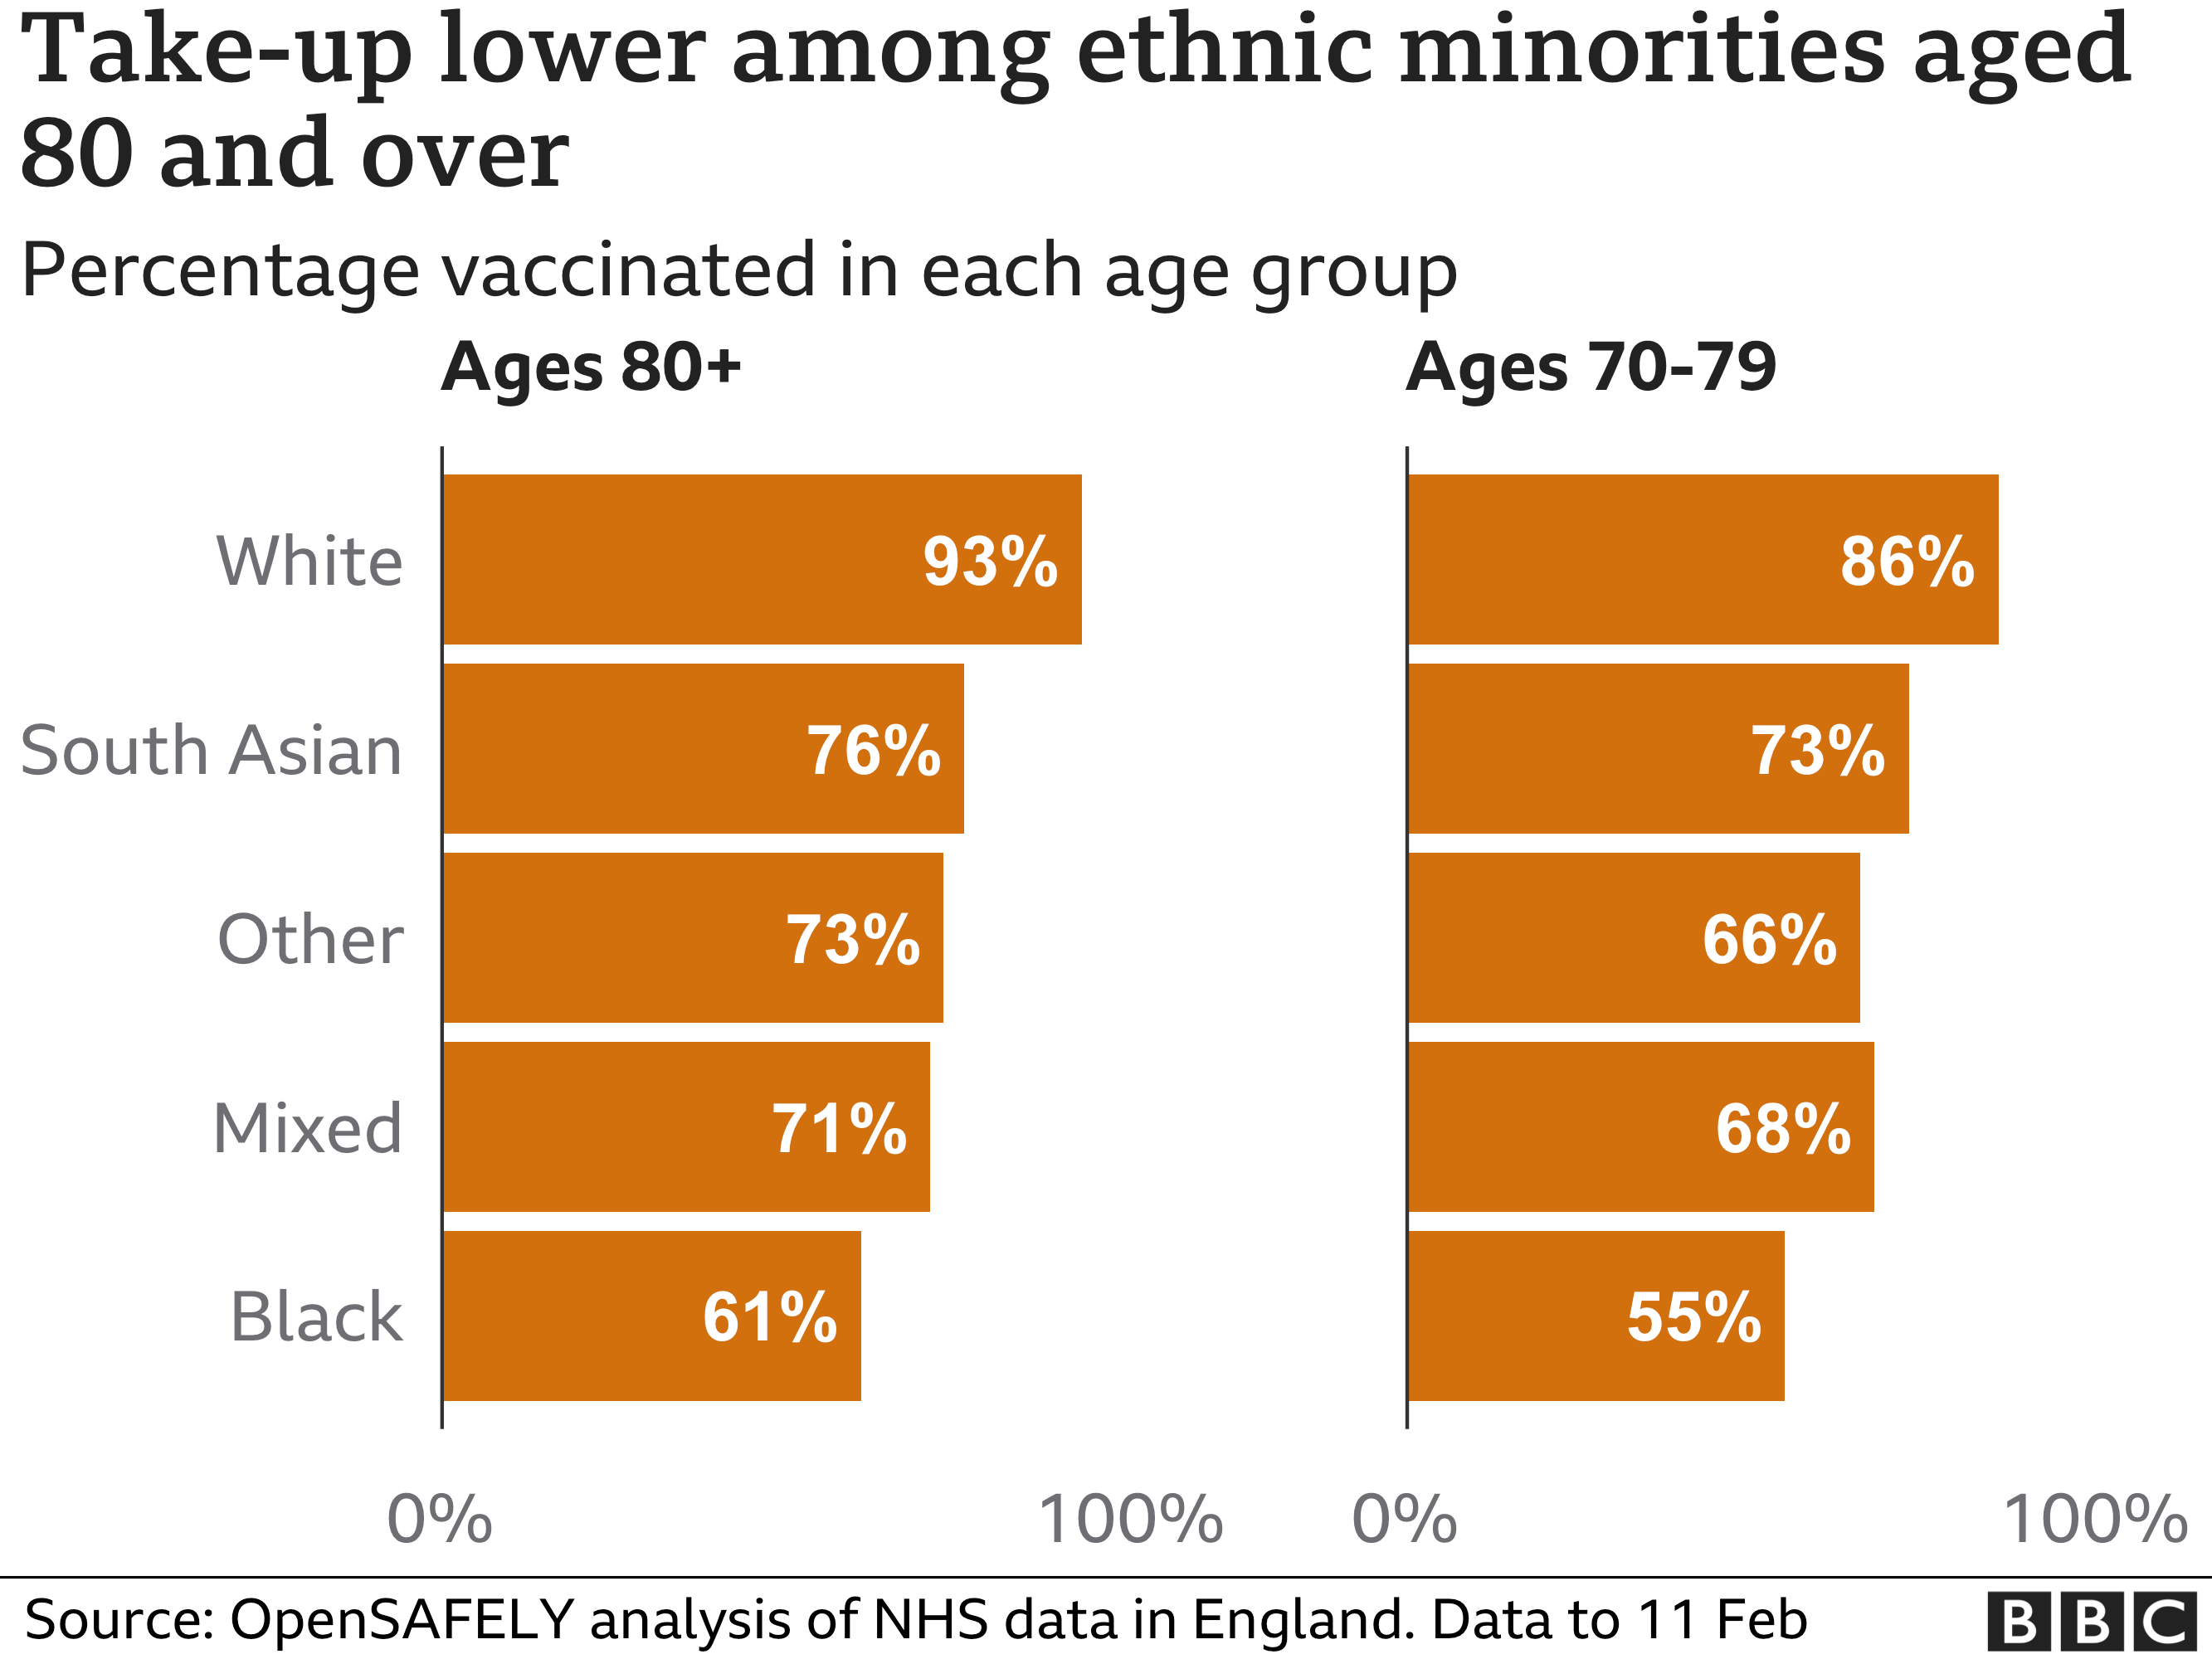 Chart showing take-up lower among those 80 and over from ethnic minorities